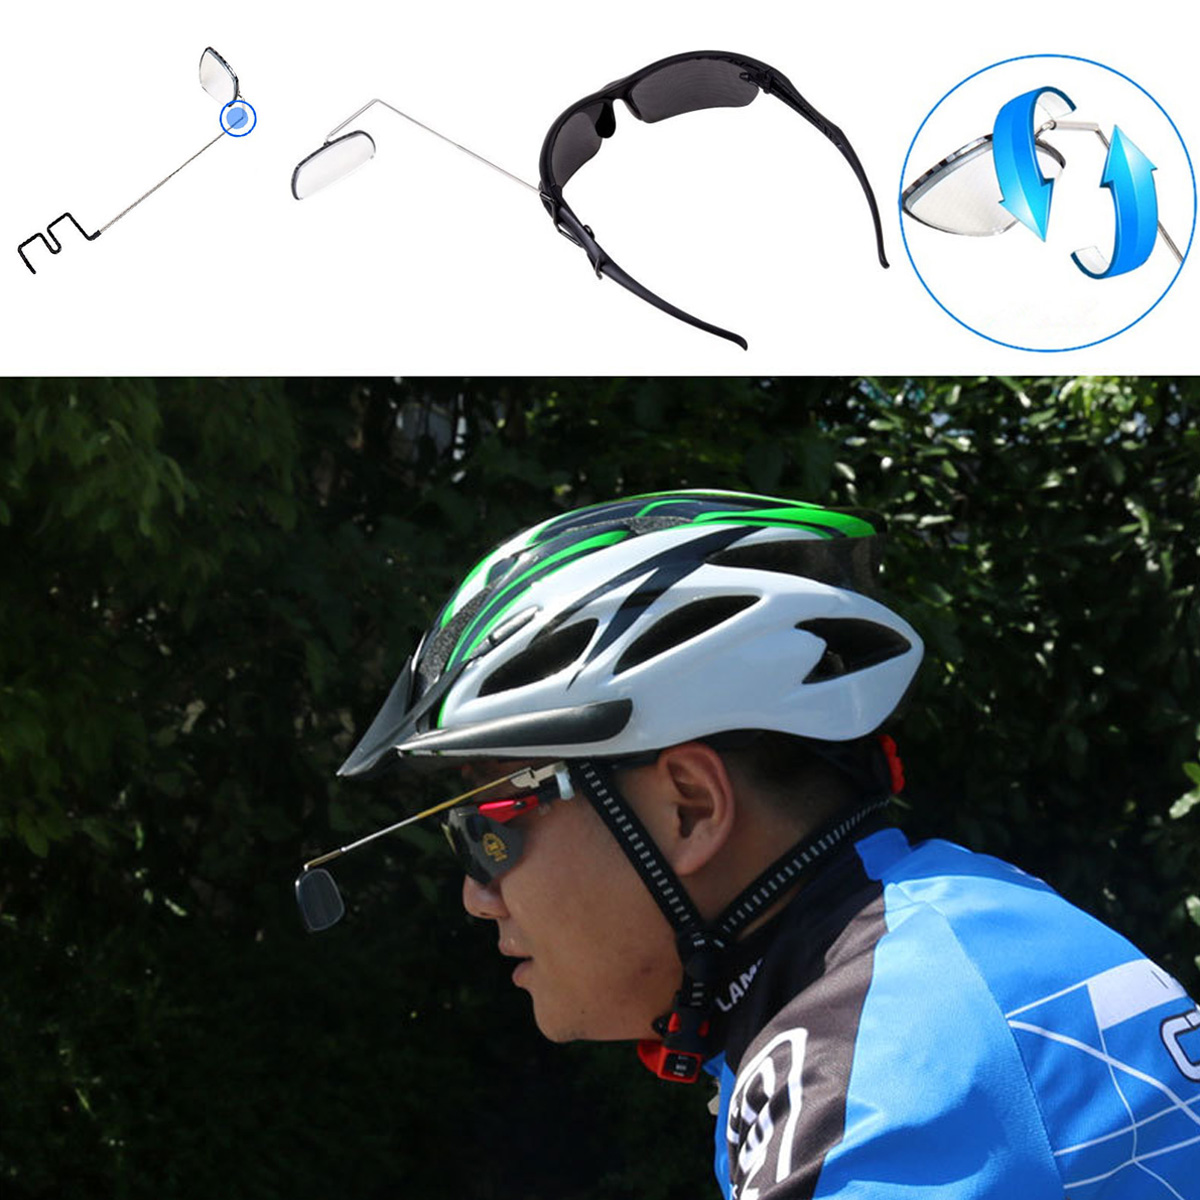 Bicycle Helmet Rearview Mirrors Cycling Accessories for Bike Motorcycle Durable